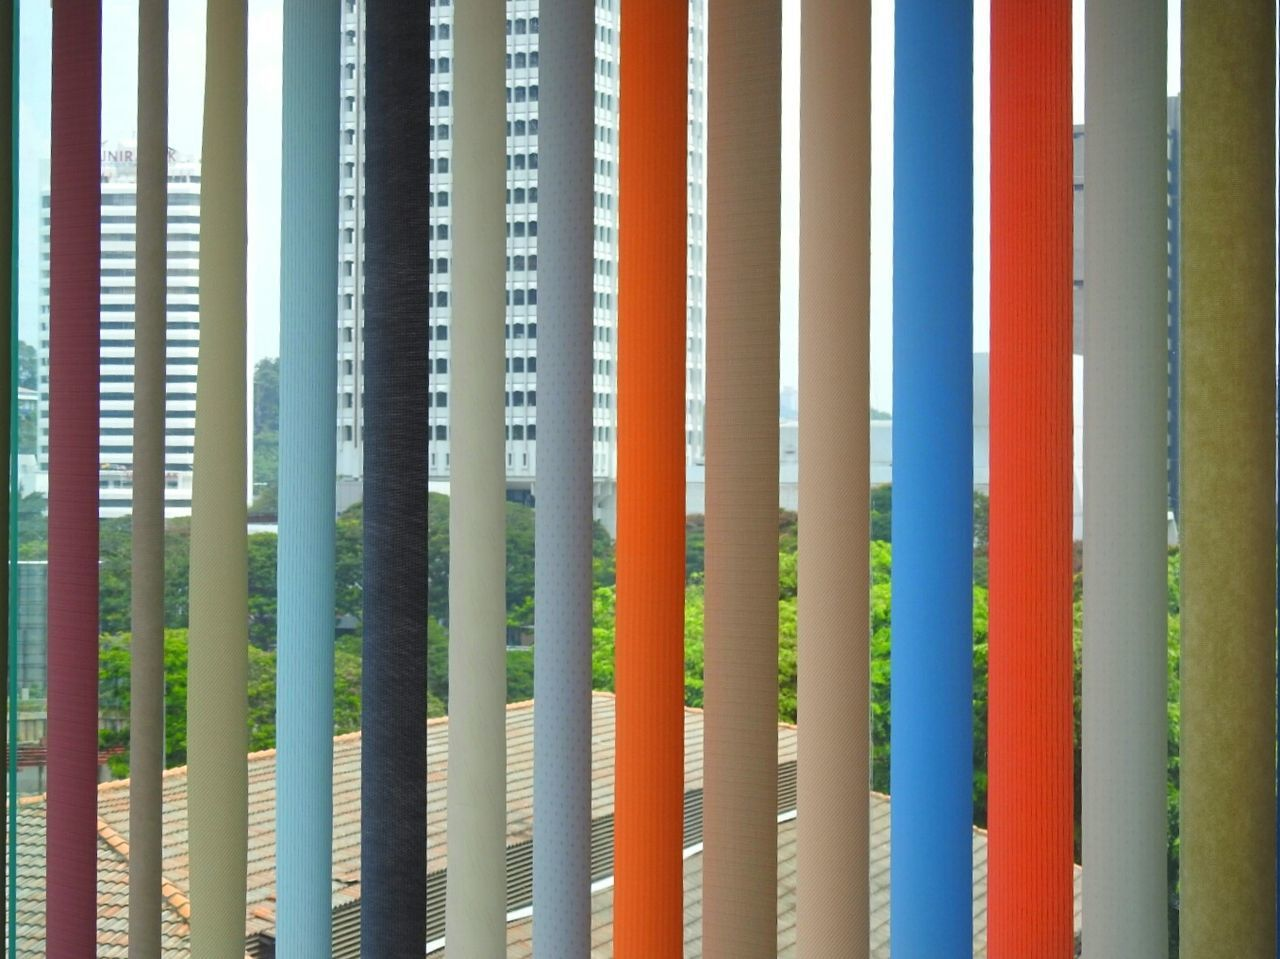 Window Blinds Blinds Vertical Lines Vertical Chic Colours Windows Window Dressing Upholstery Orange Blue Light Blue Beige Cream Grey Material Cloth Stripes View Looking Out Shade Shades Of Color Lines&Design Lines Lines And Lights Lines, Colors & Textures